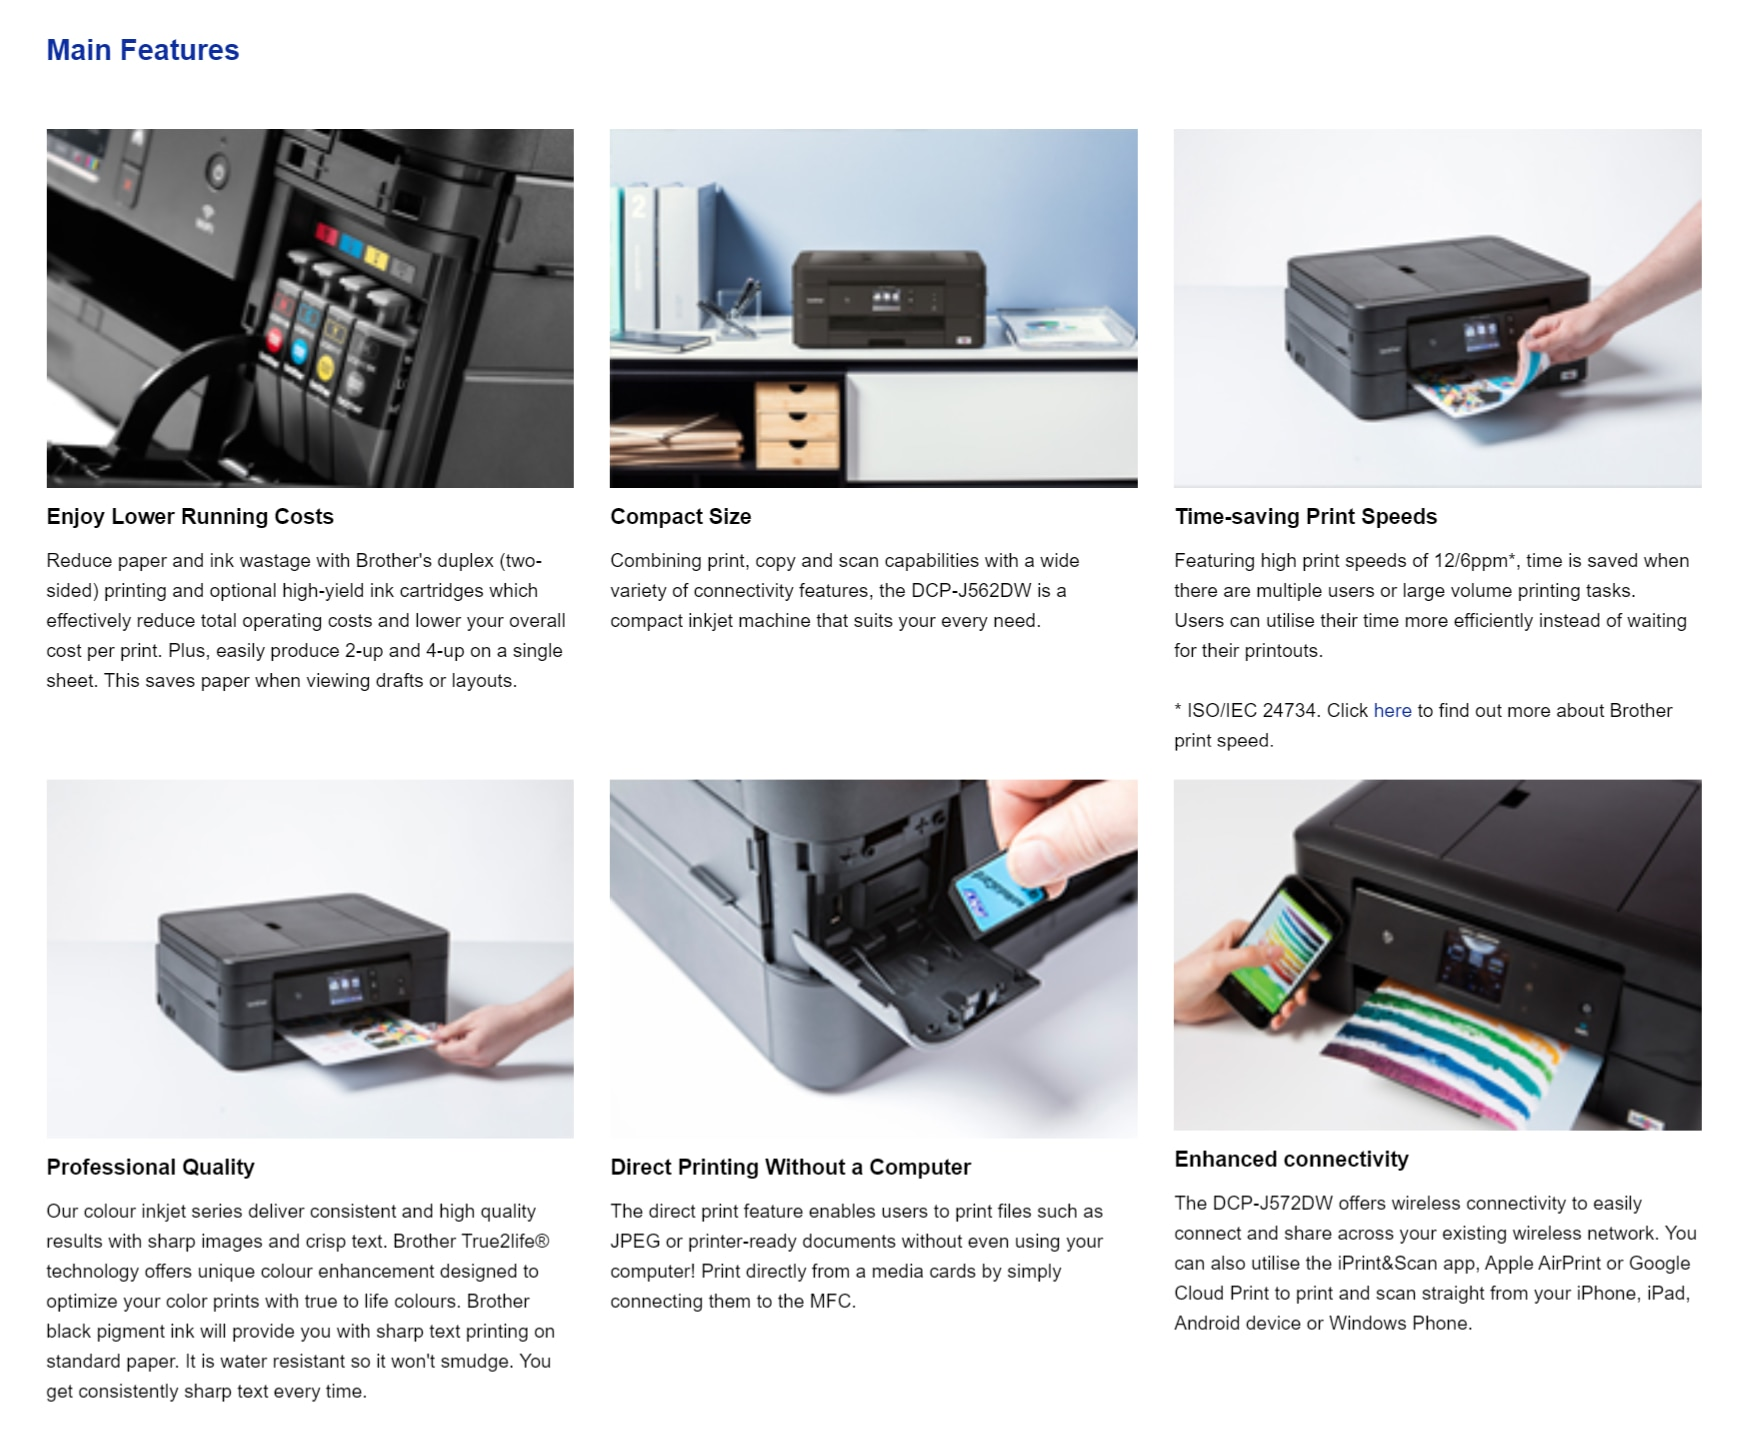 BROTHER DCPJ572DW All in one Color Inkjet Printer